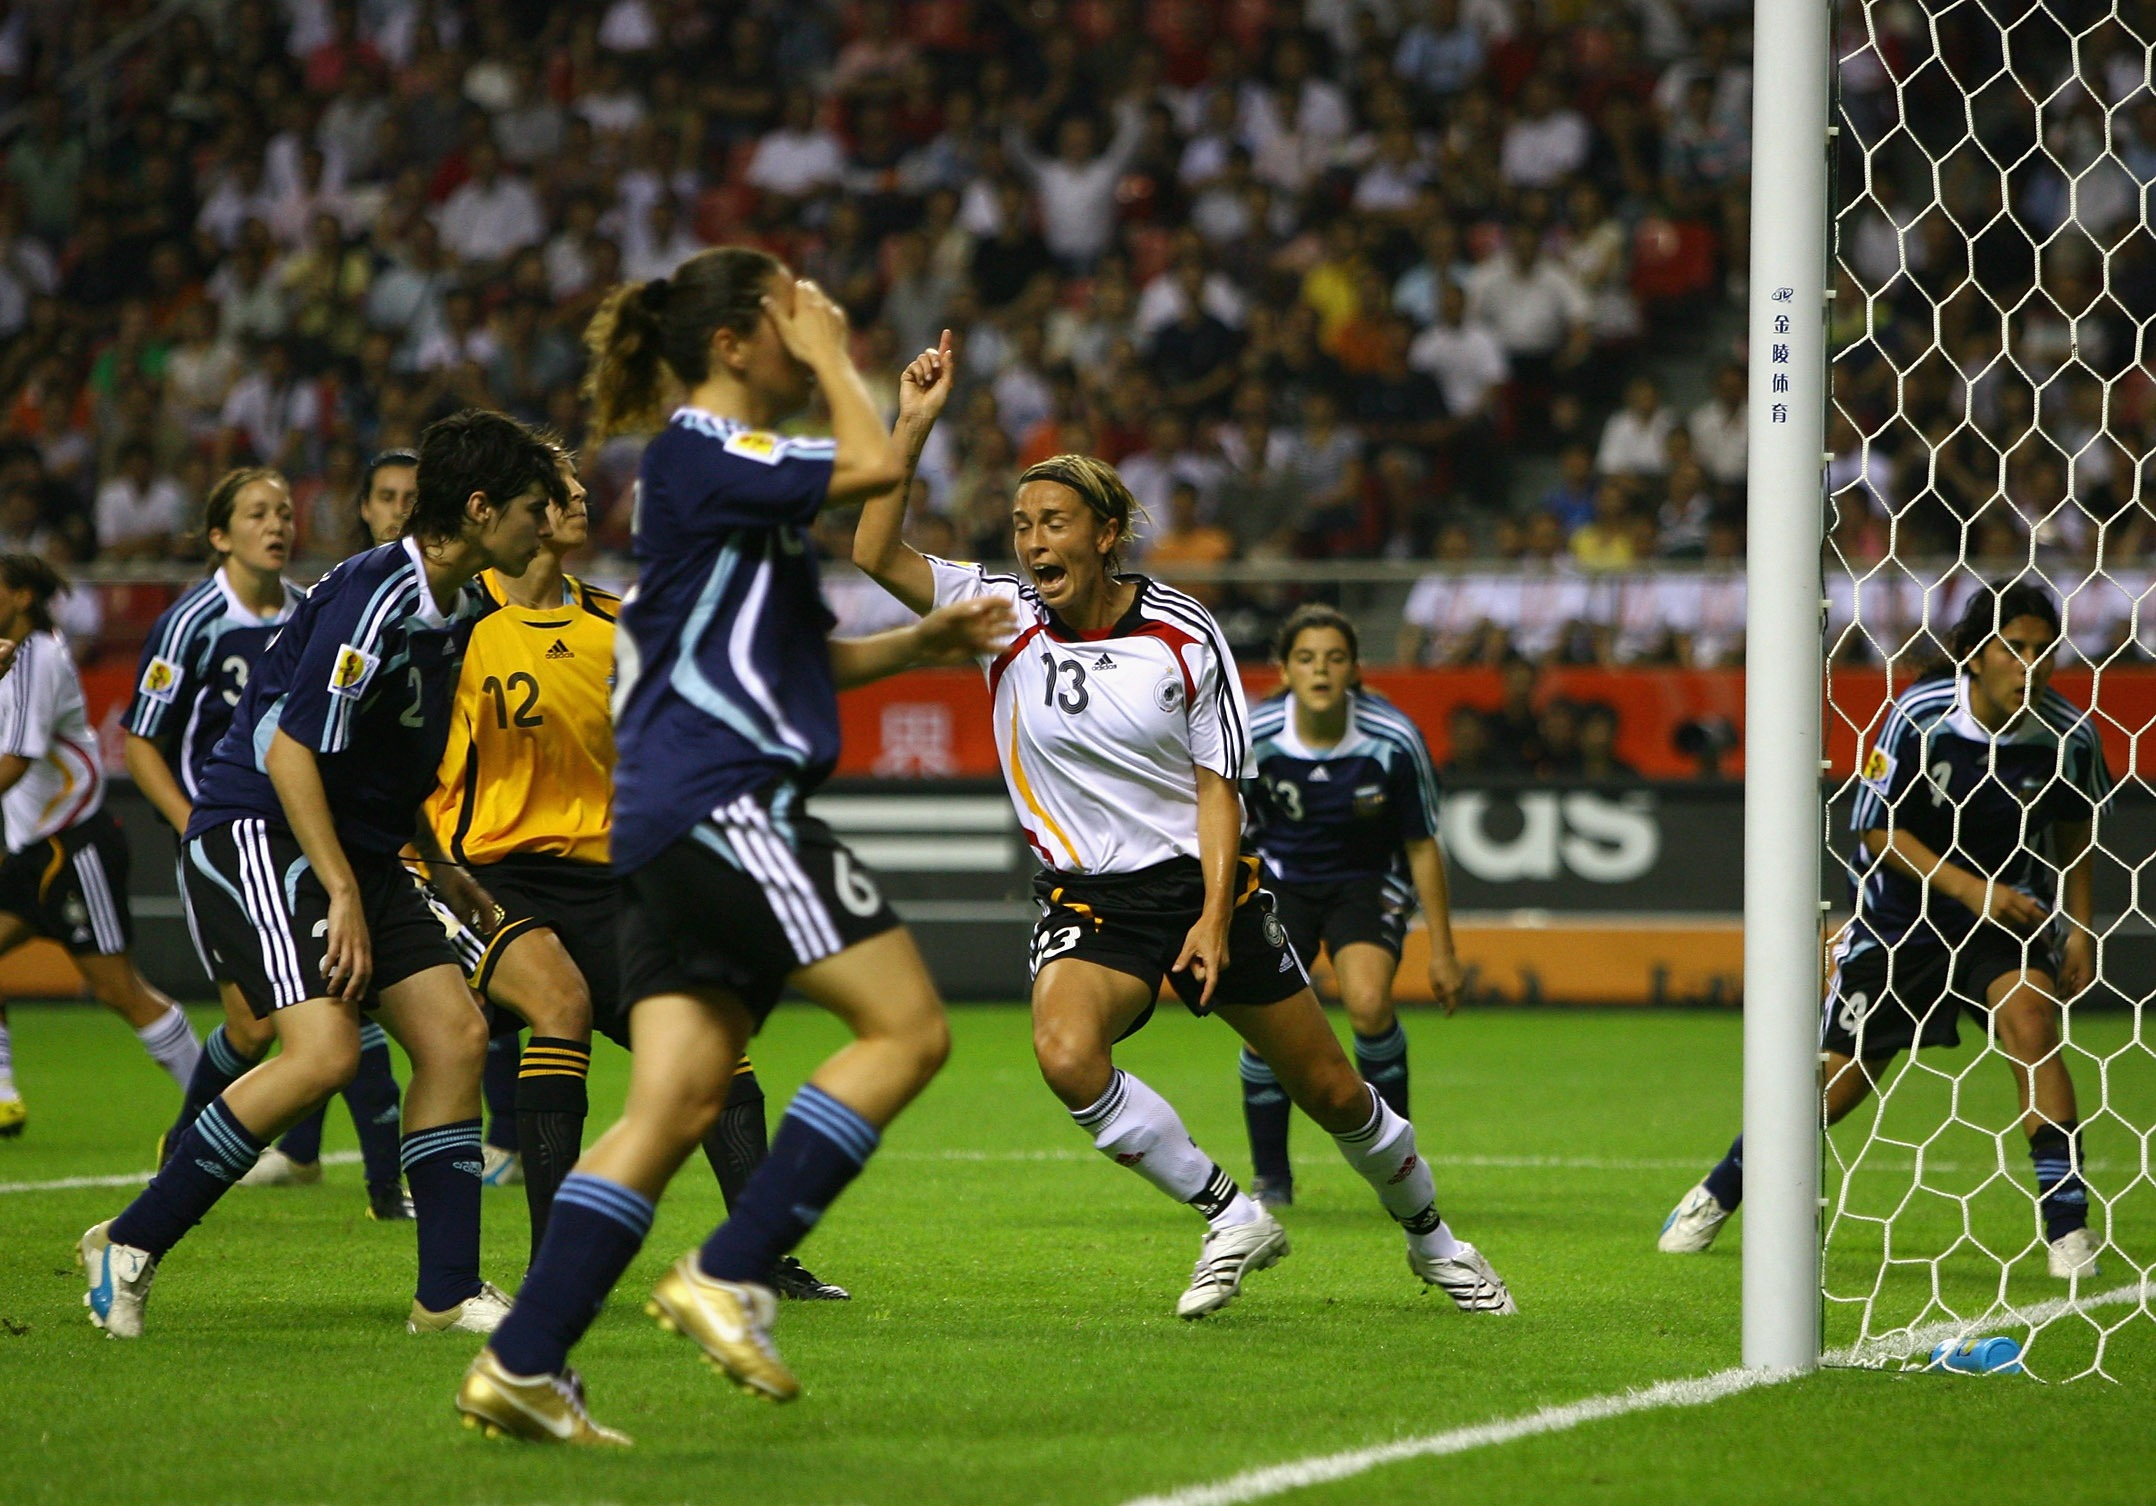 SHANGHAI, CHINA - SEPTEMBER 10:  Sandra Minnert of Germany celebrates after Vanina Correa of Argentina scored an own goal during the FIFA Women's World Cup 2007 Group A match between Germany and Argentina at the Shanghai Hongkou Football Stadium on Septem